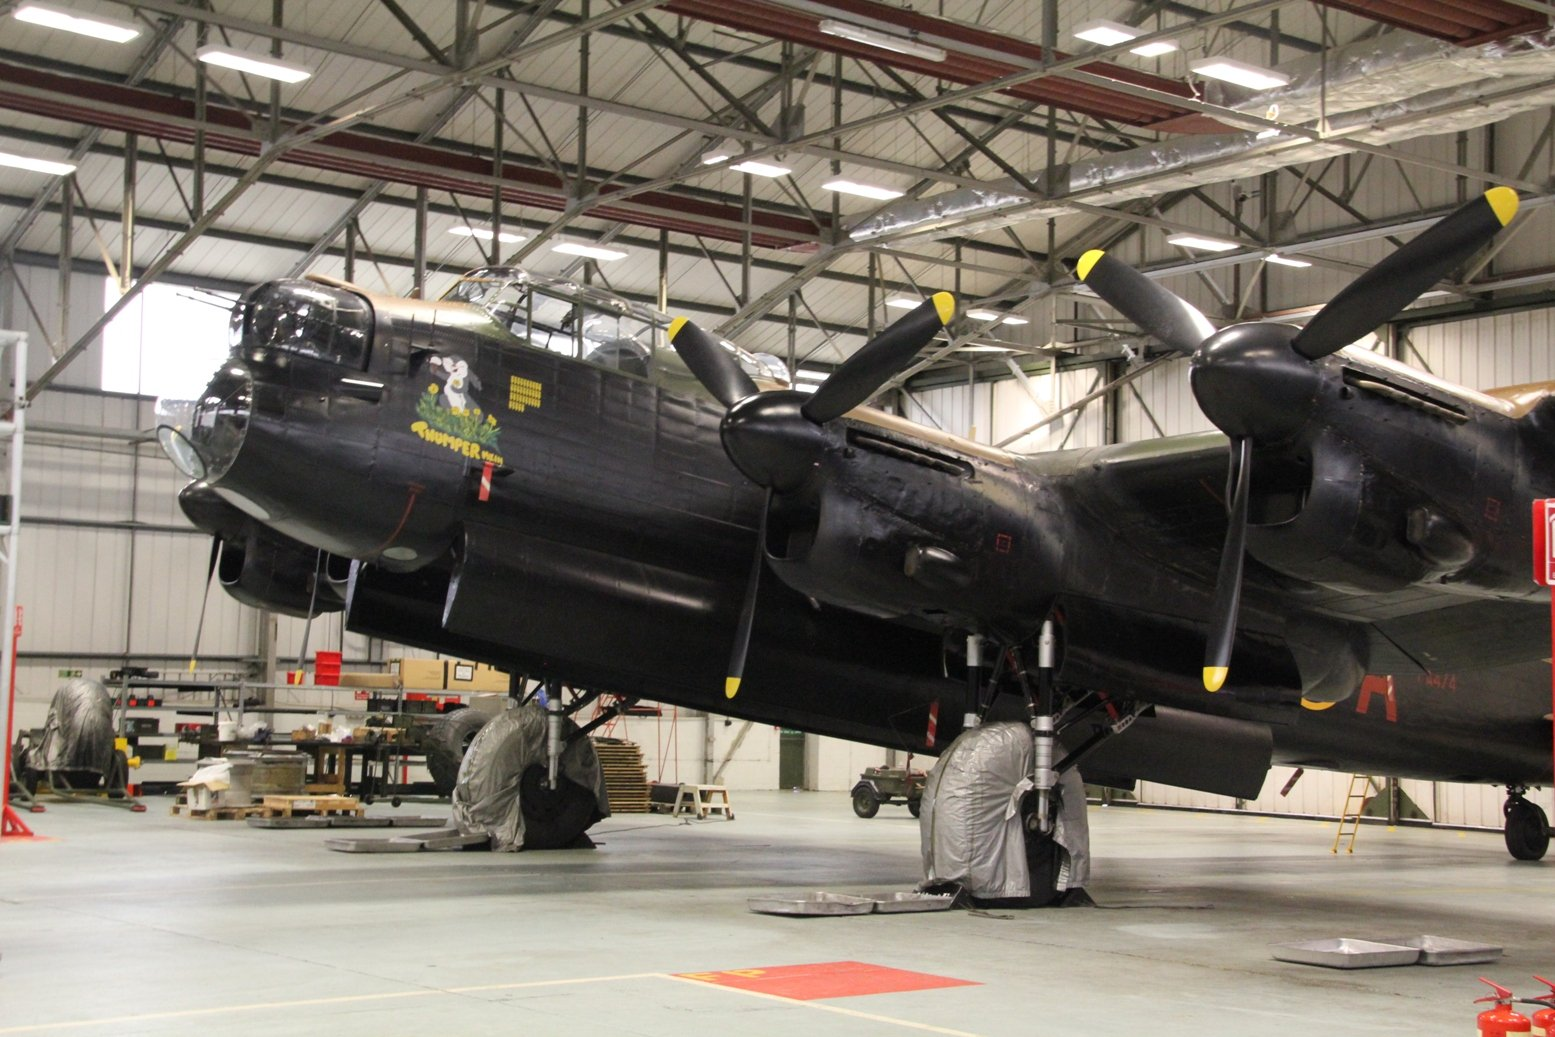 The BBMF Lancaster PA474 at RAF Coningsby